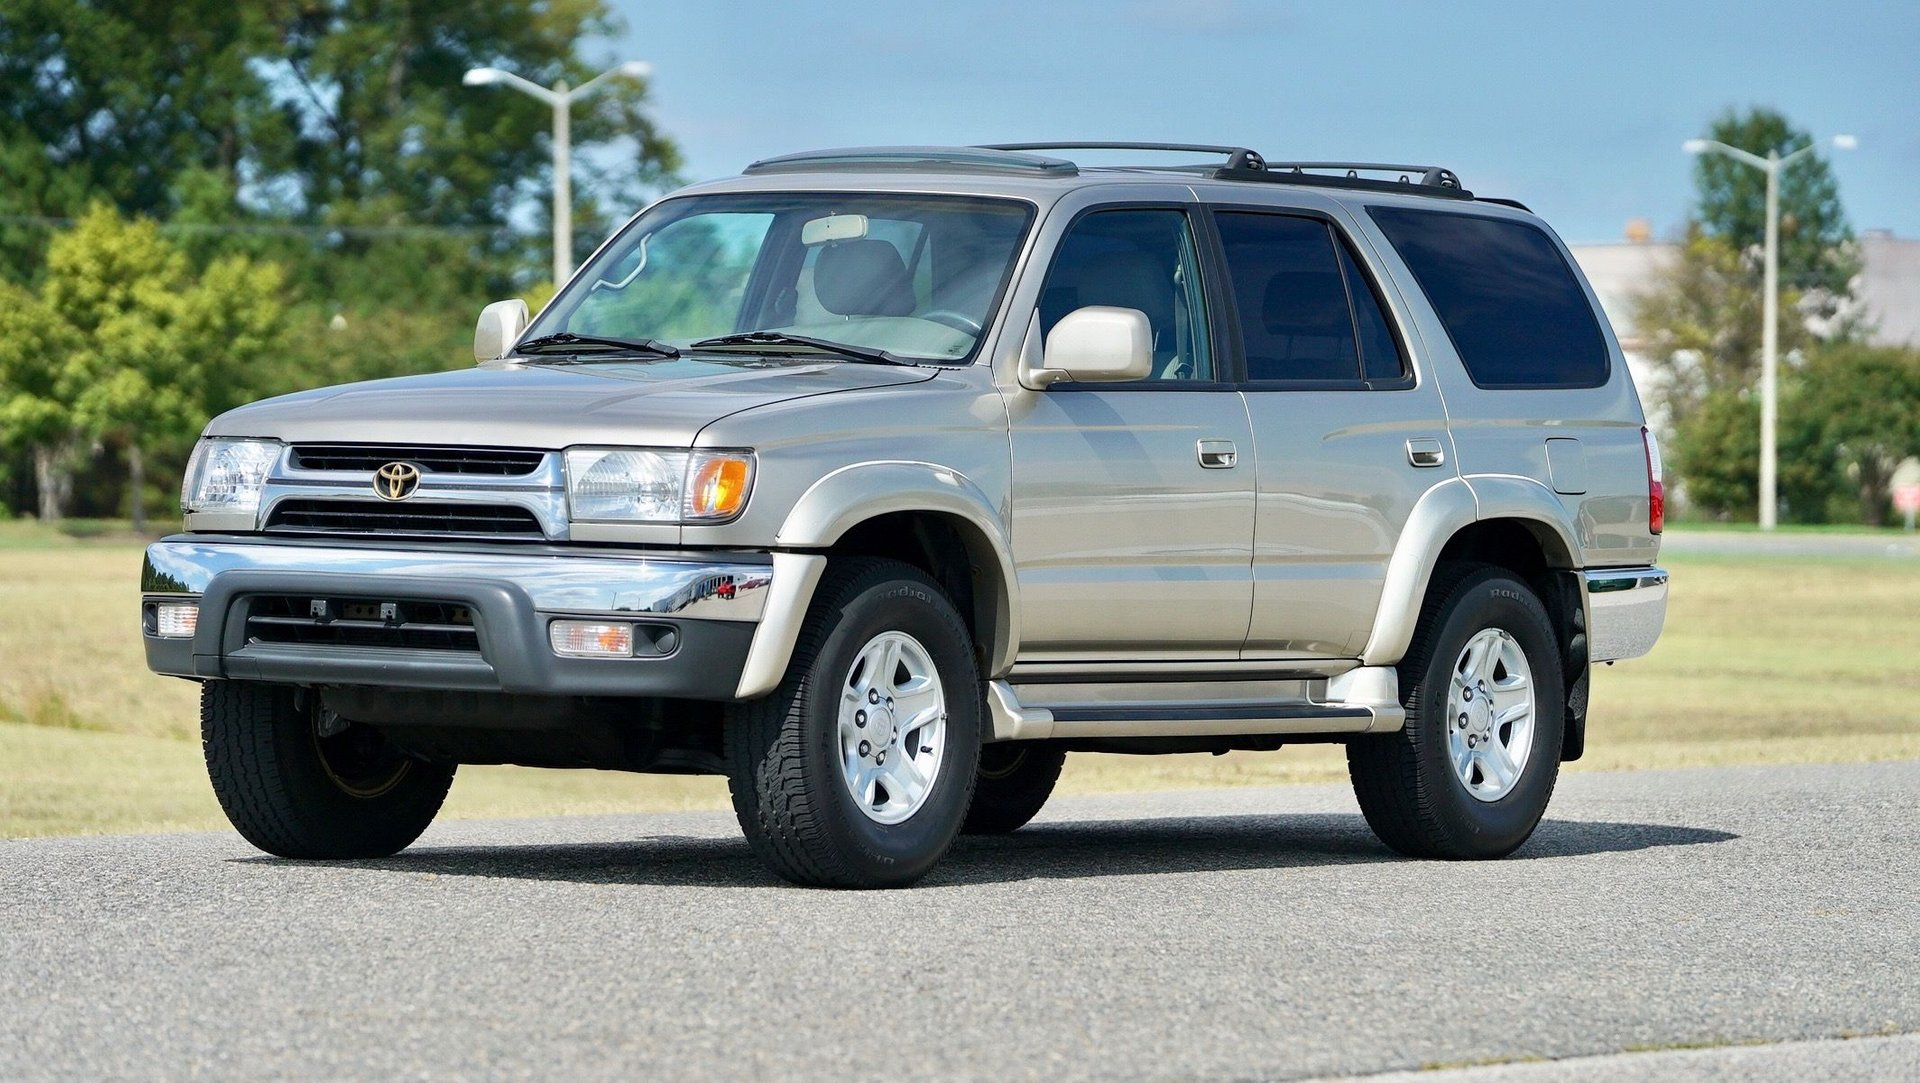 2002 toyota 4runner fully serviced